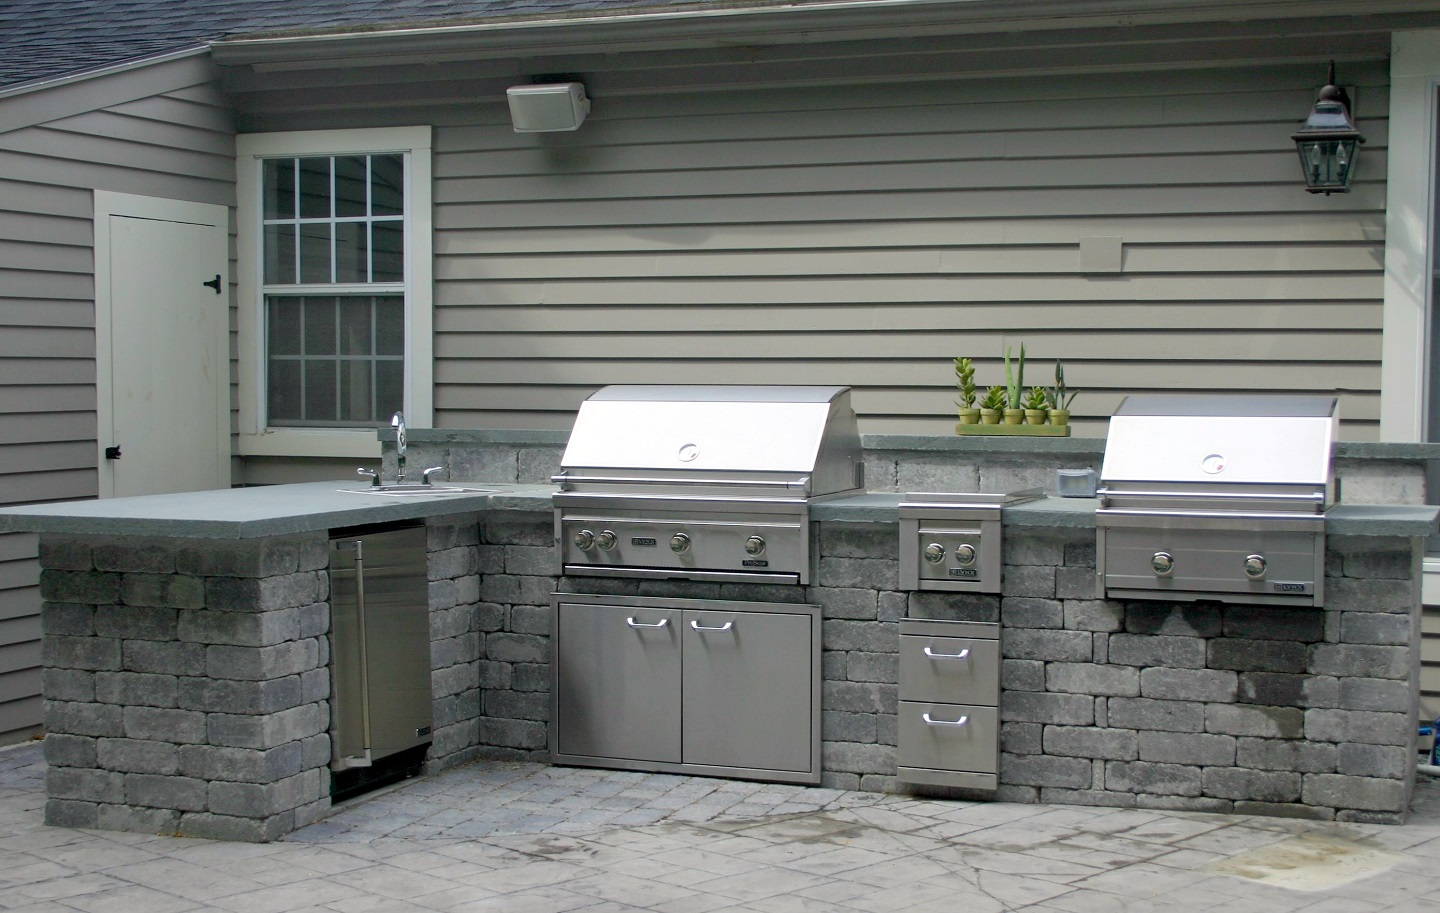 Stunning outdoor kitchen with patio pavers in Arlington, MA